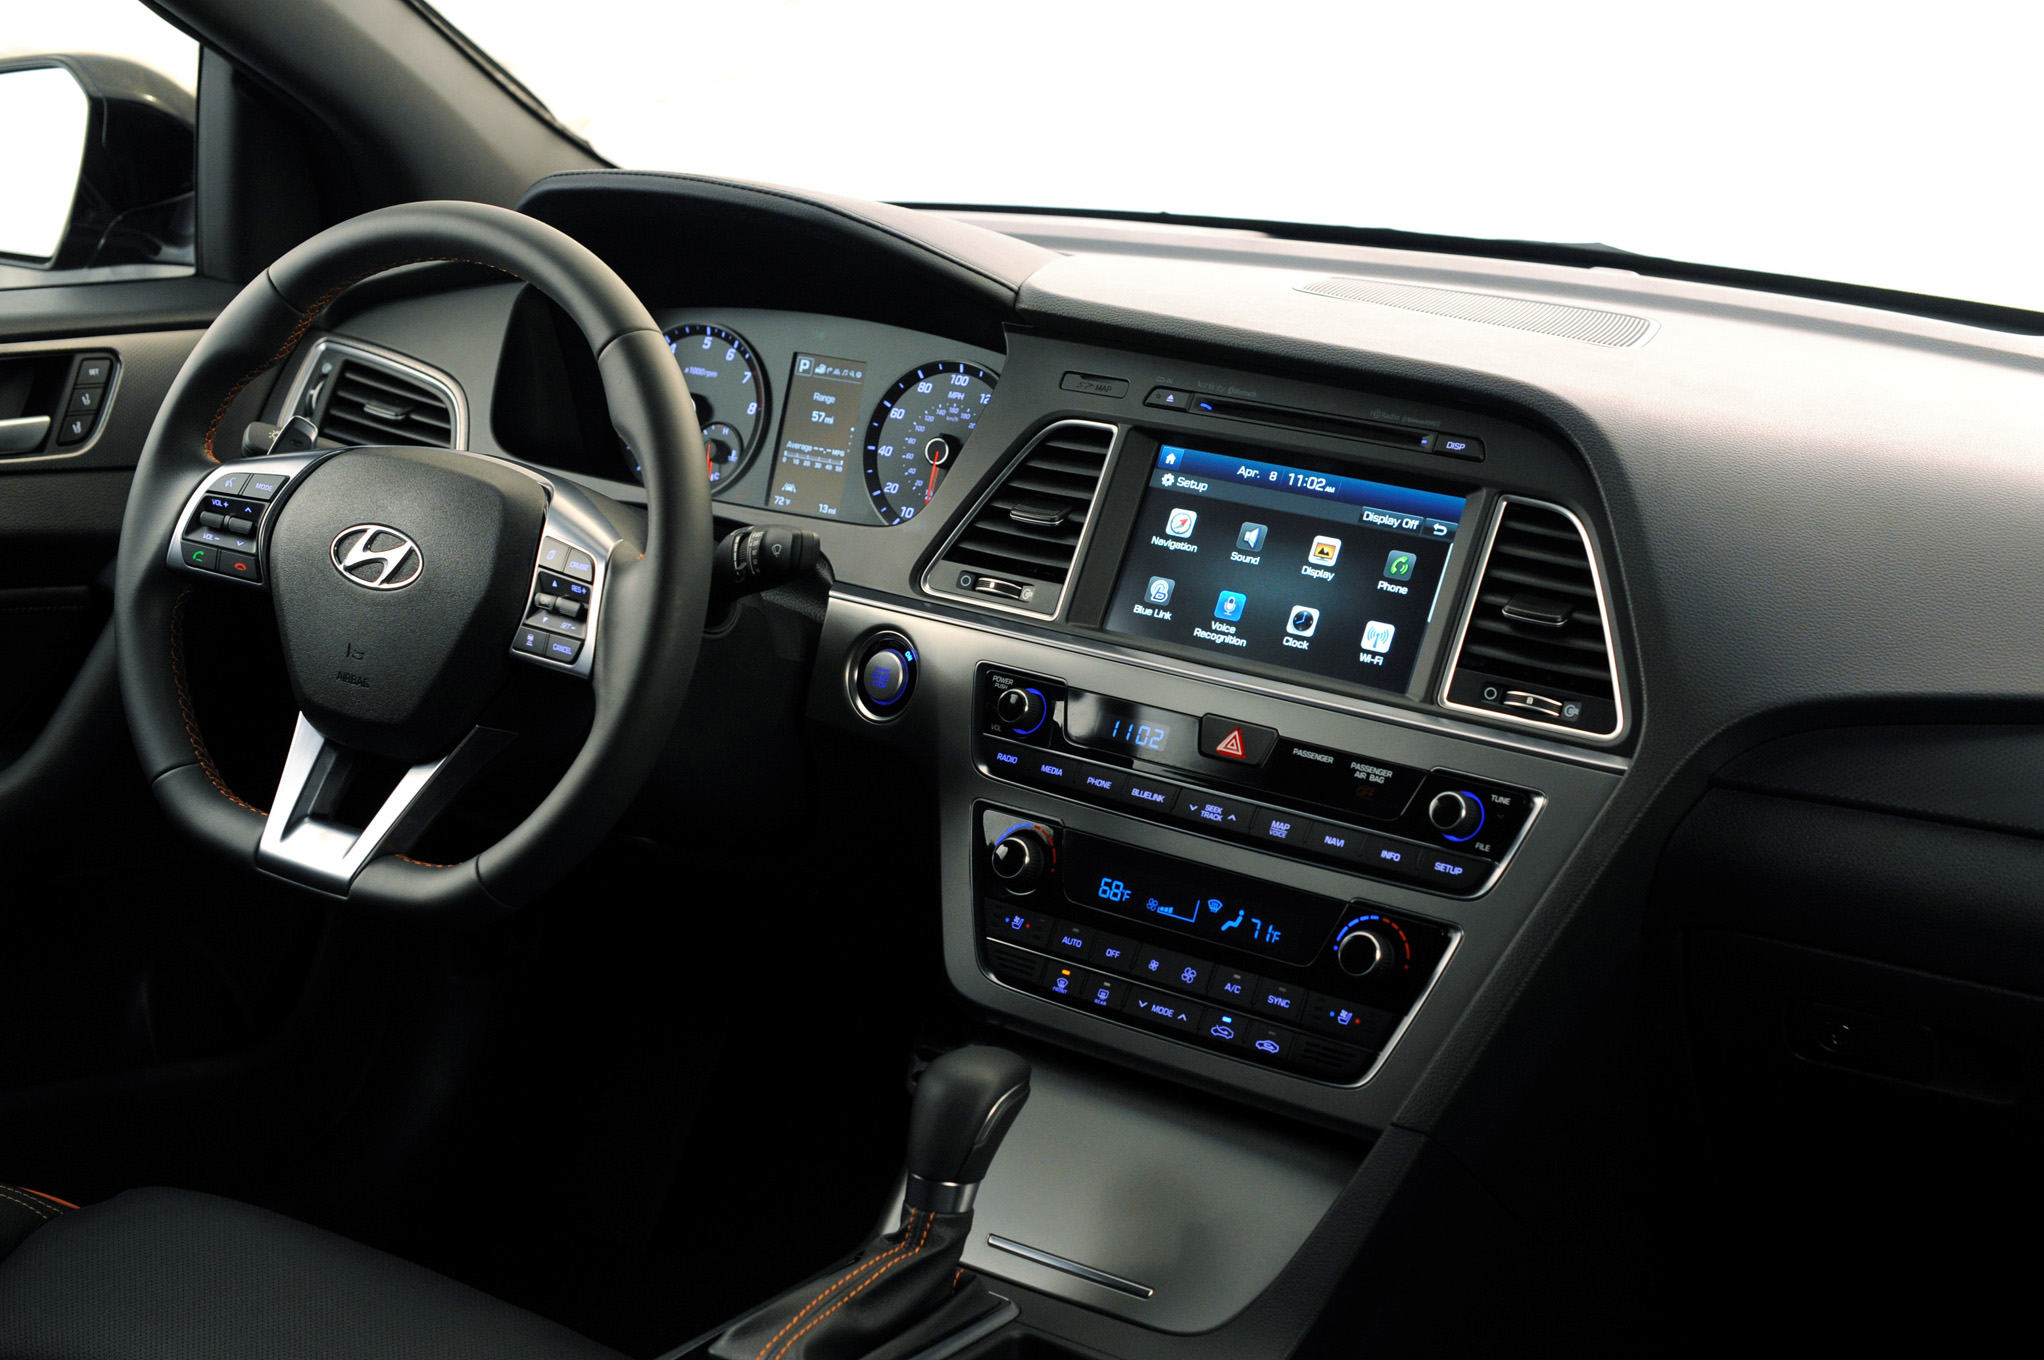 Hyundai Sonata 2015 To Integrate Carplay And Android Auto